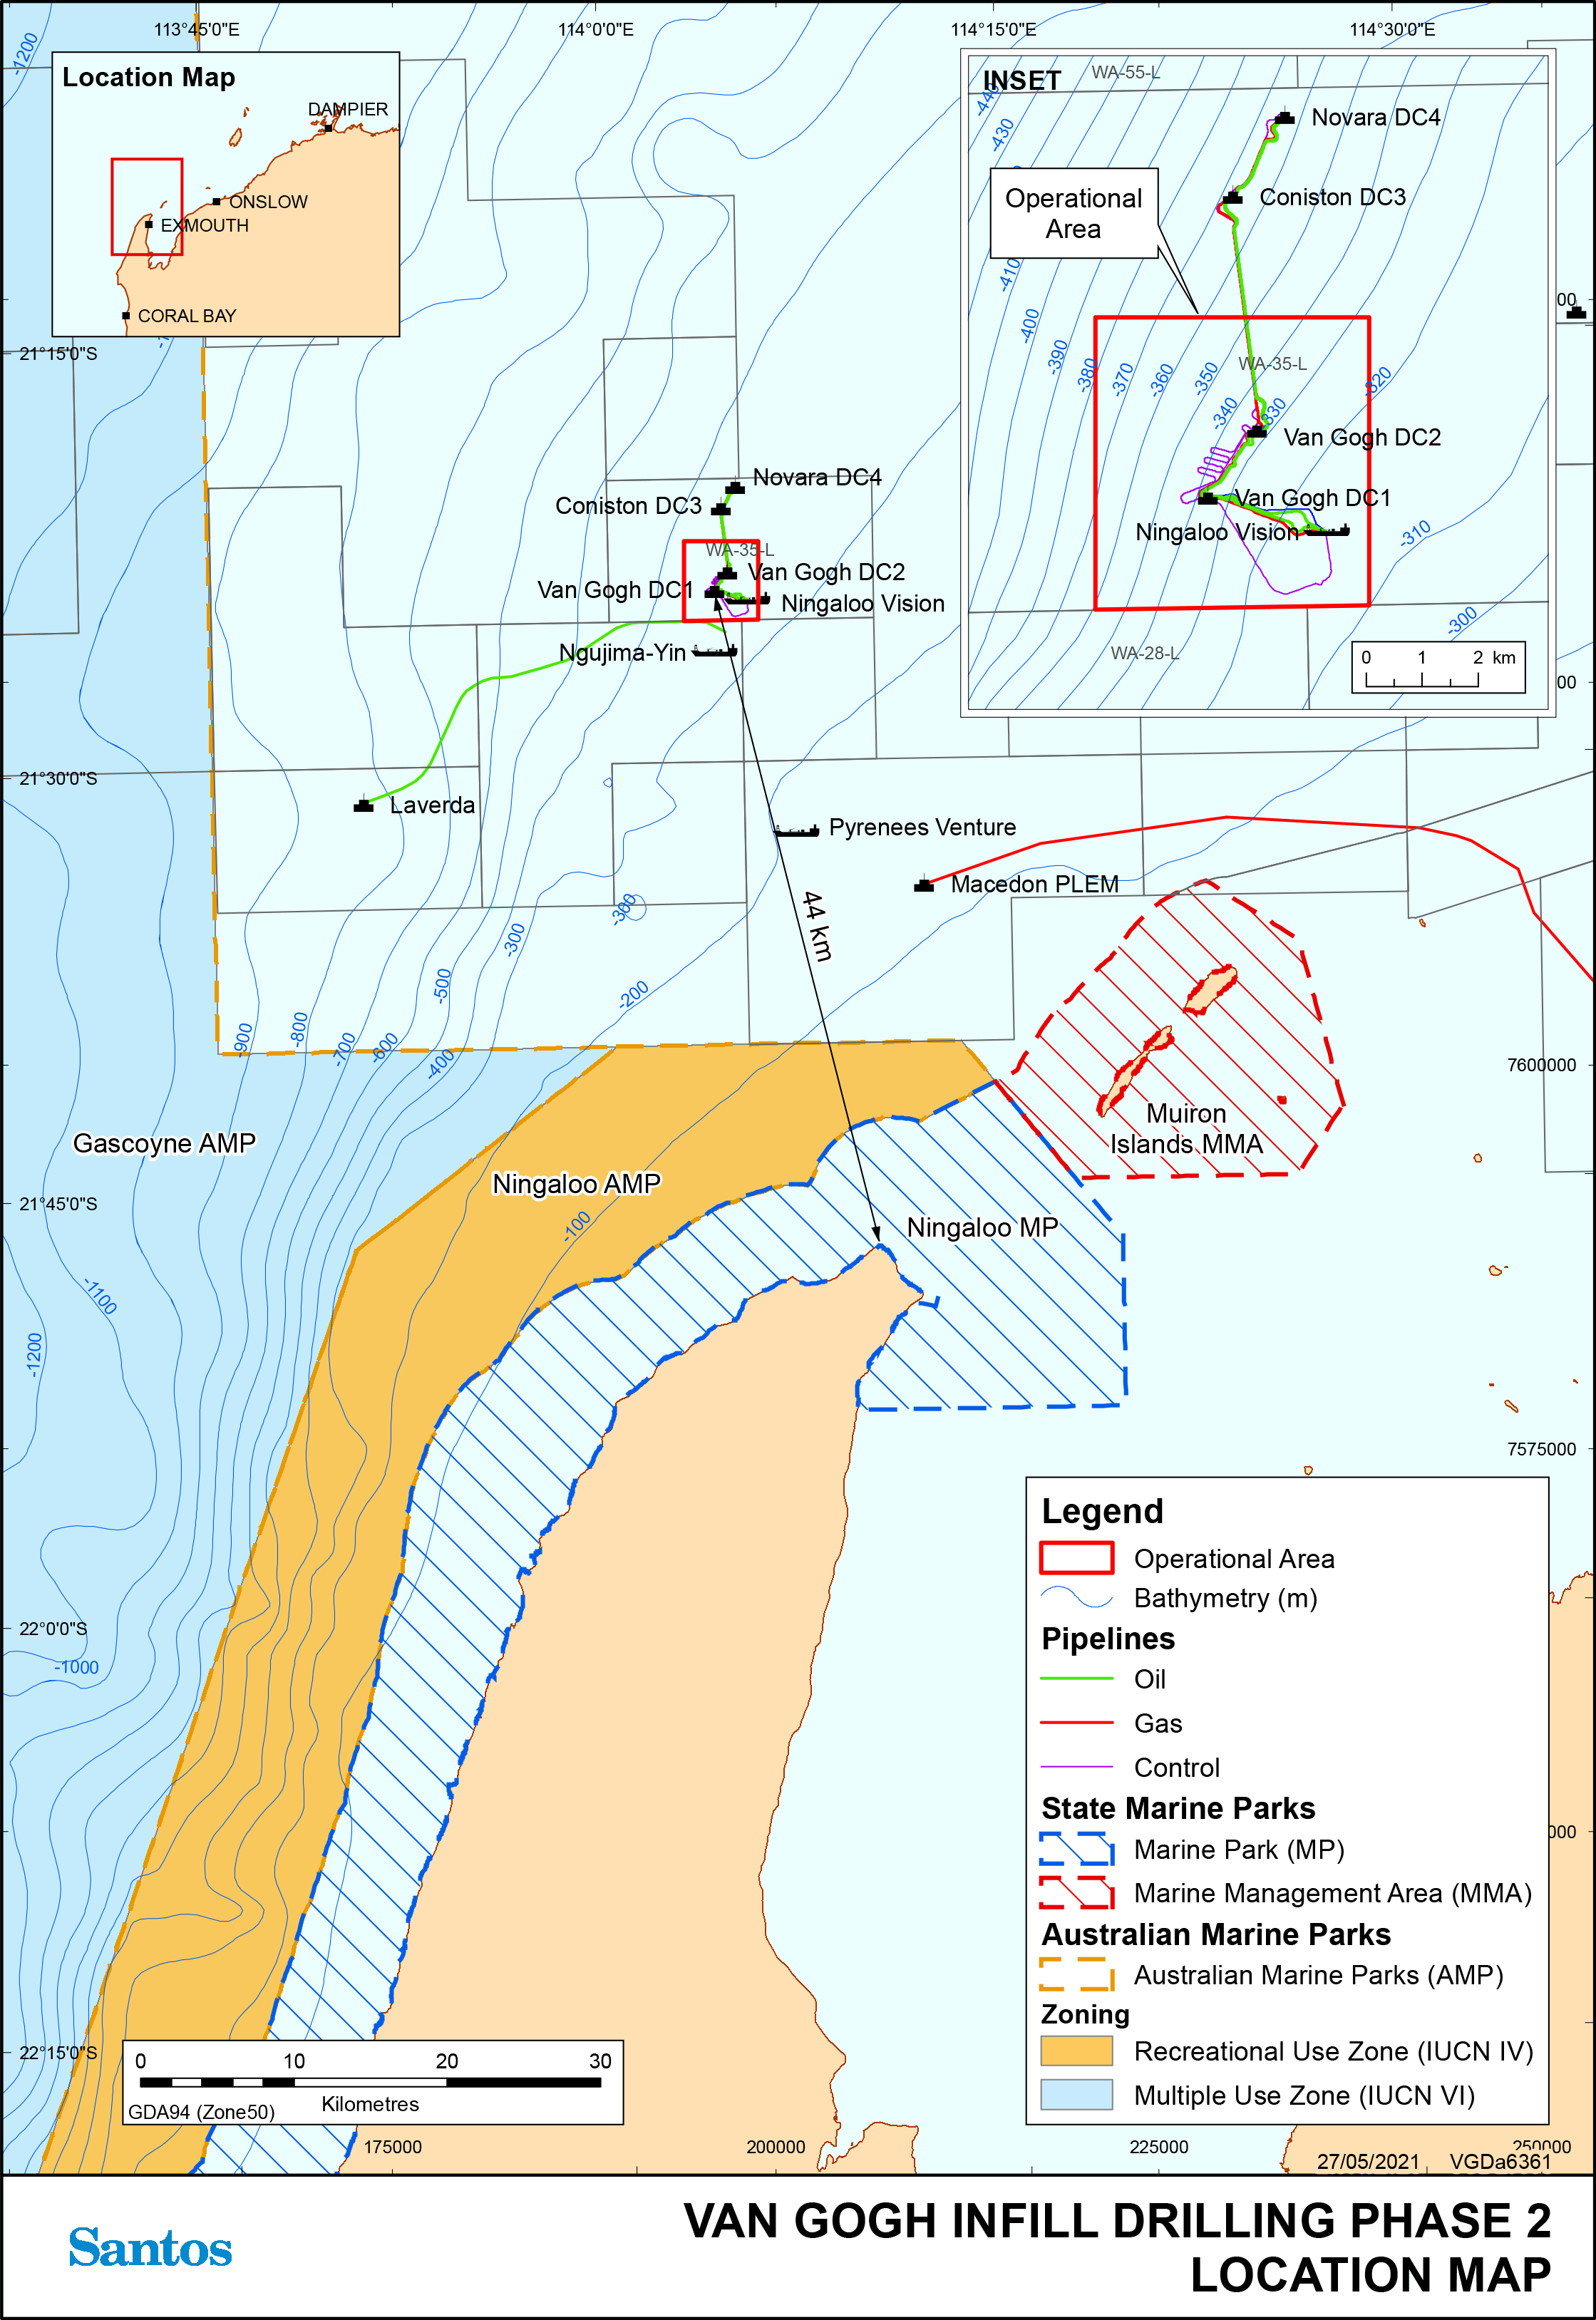 Location map - Activity: Van Gogh Phase 2 Drilling and Completions Extension  (refer to description)